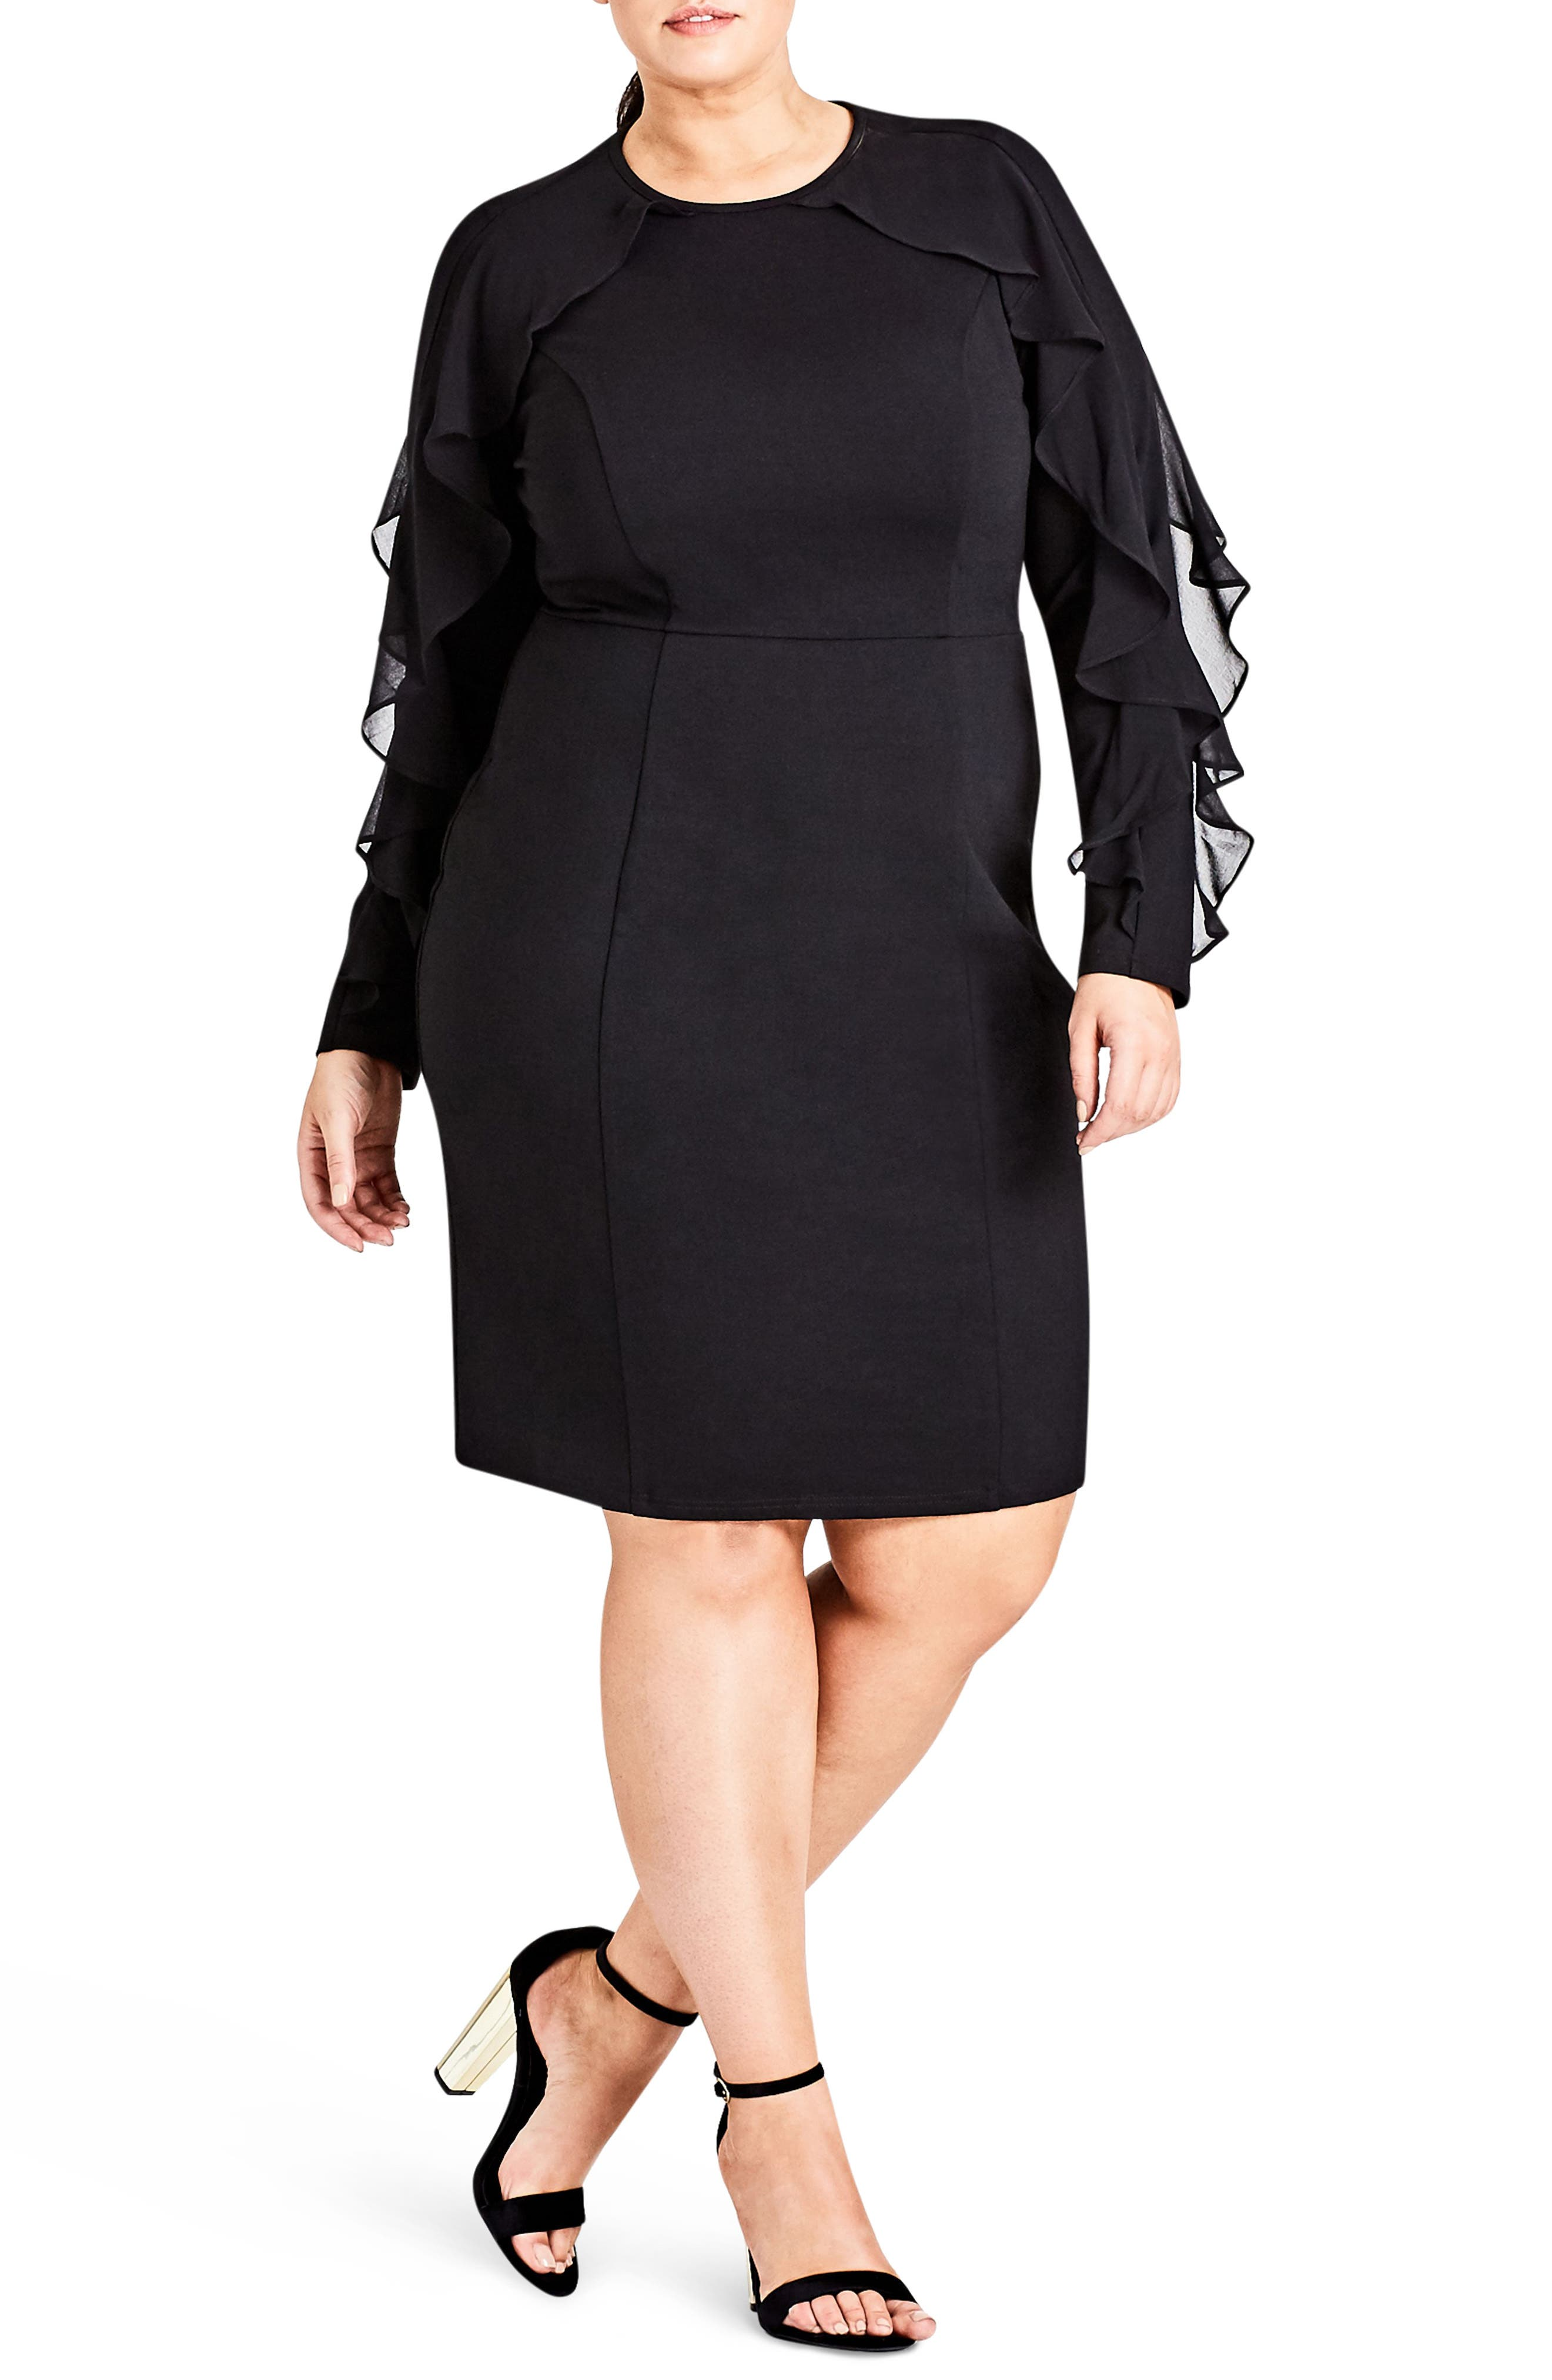 Chic City Romantic Sleeve Sheath Dress,                             Main thumbnail 1, color,                             Black